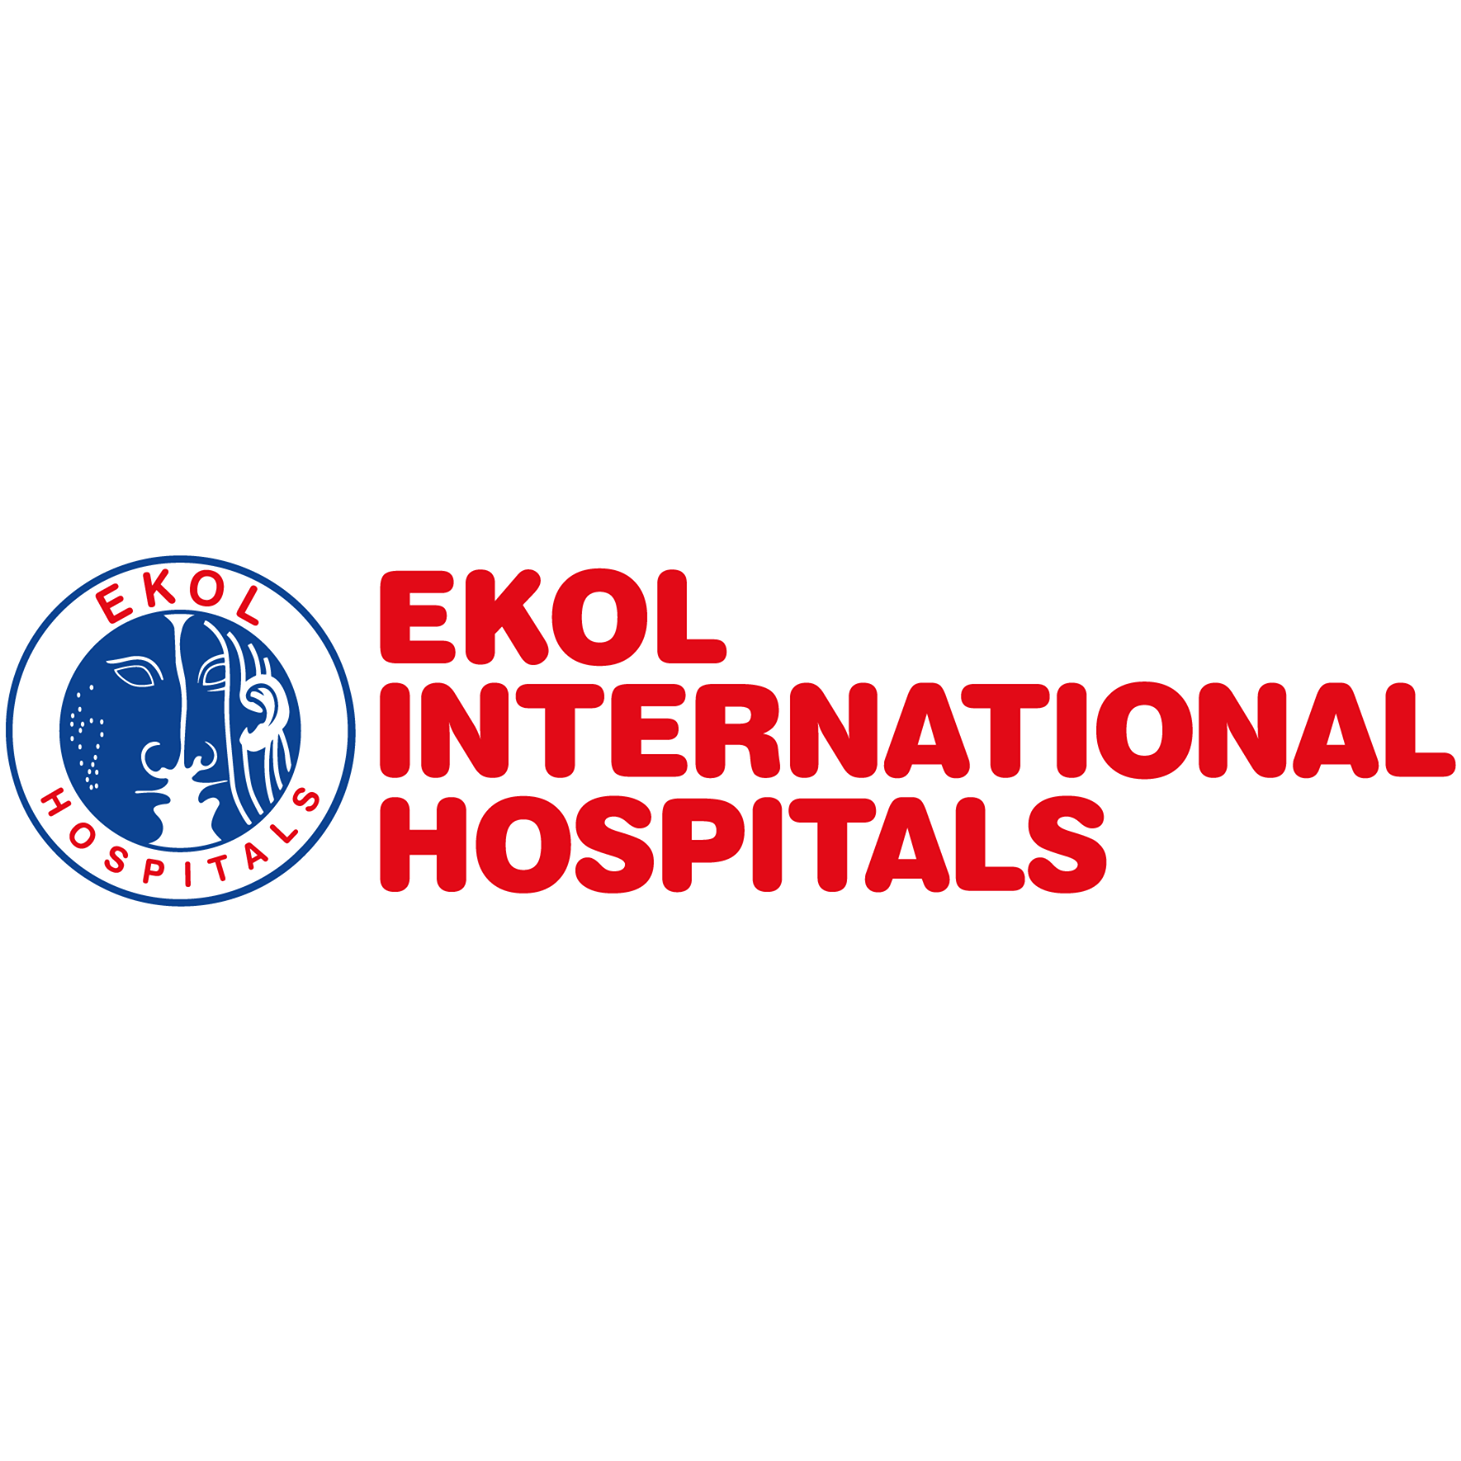 مستشفى إيكول Ekol international hospitals